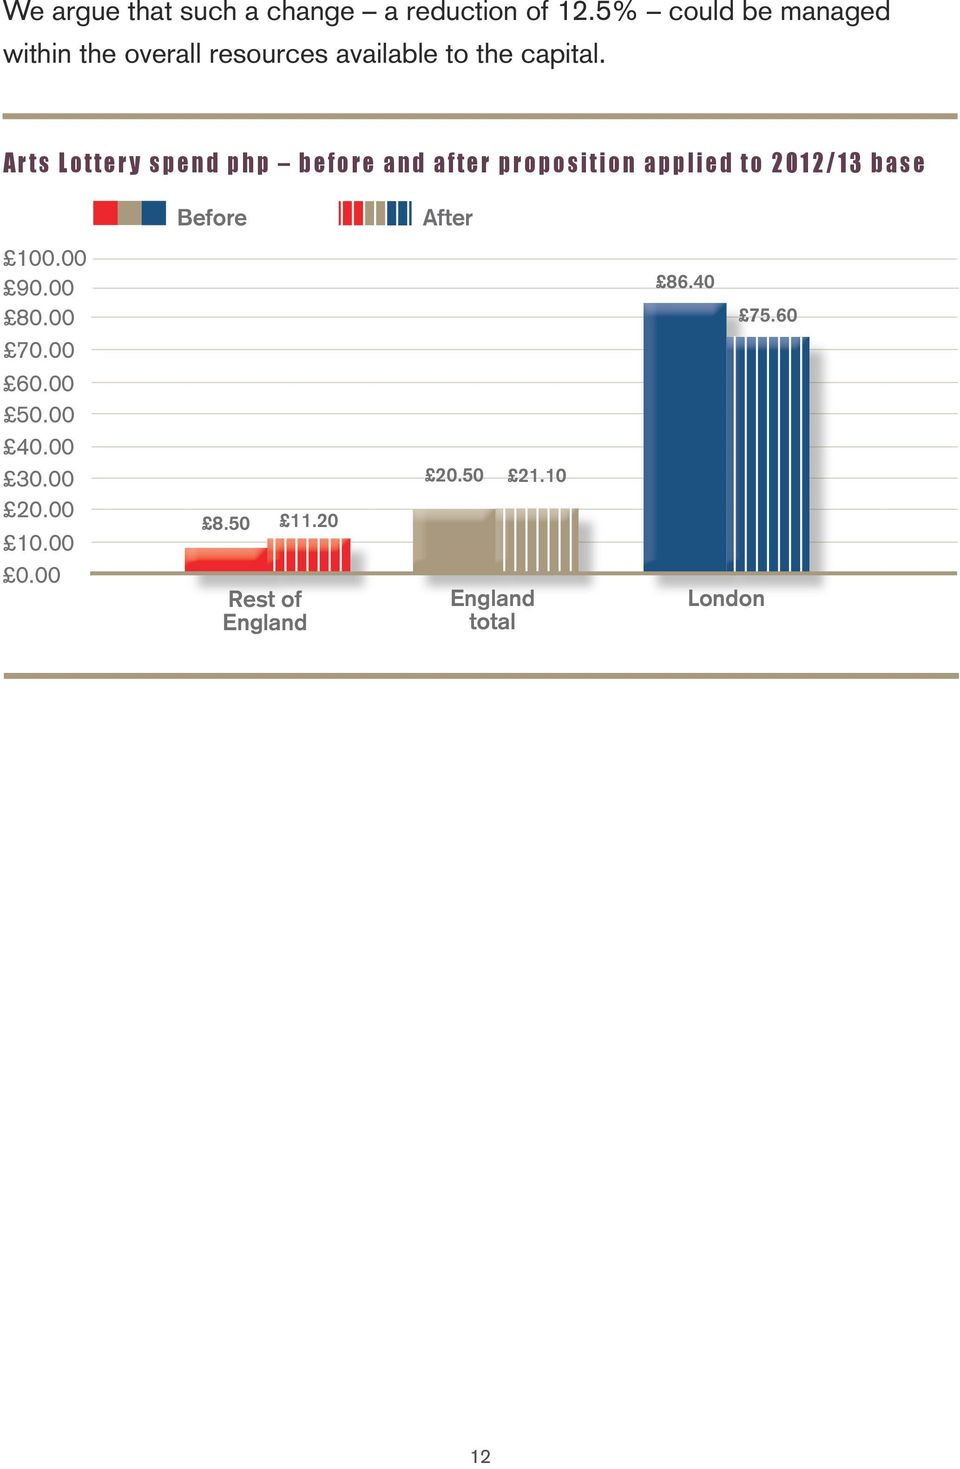 Arts Lottery spend php before and after proposition applied to 2012/13 base